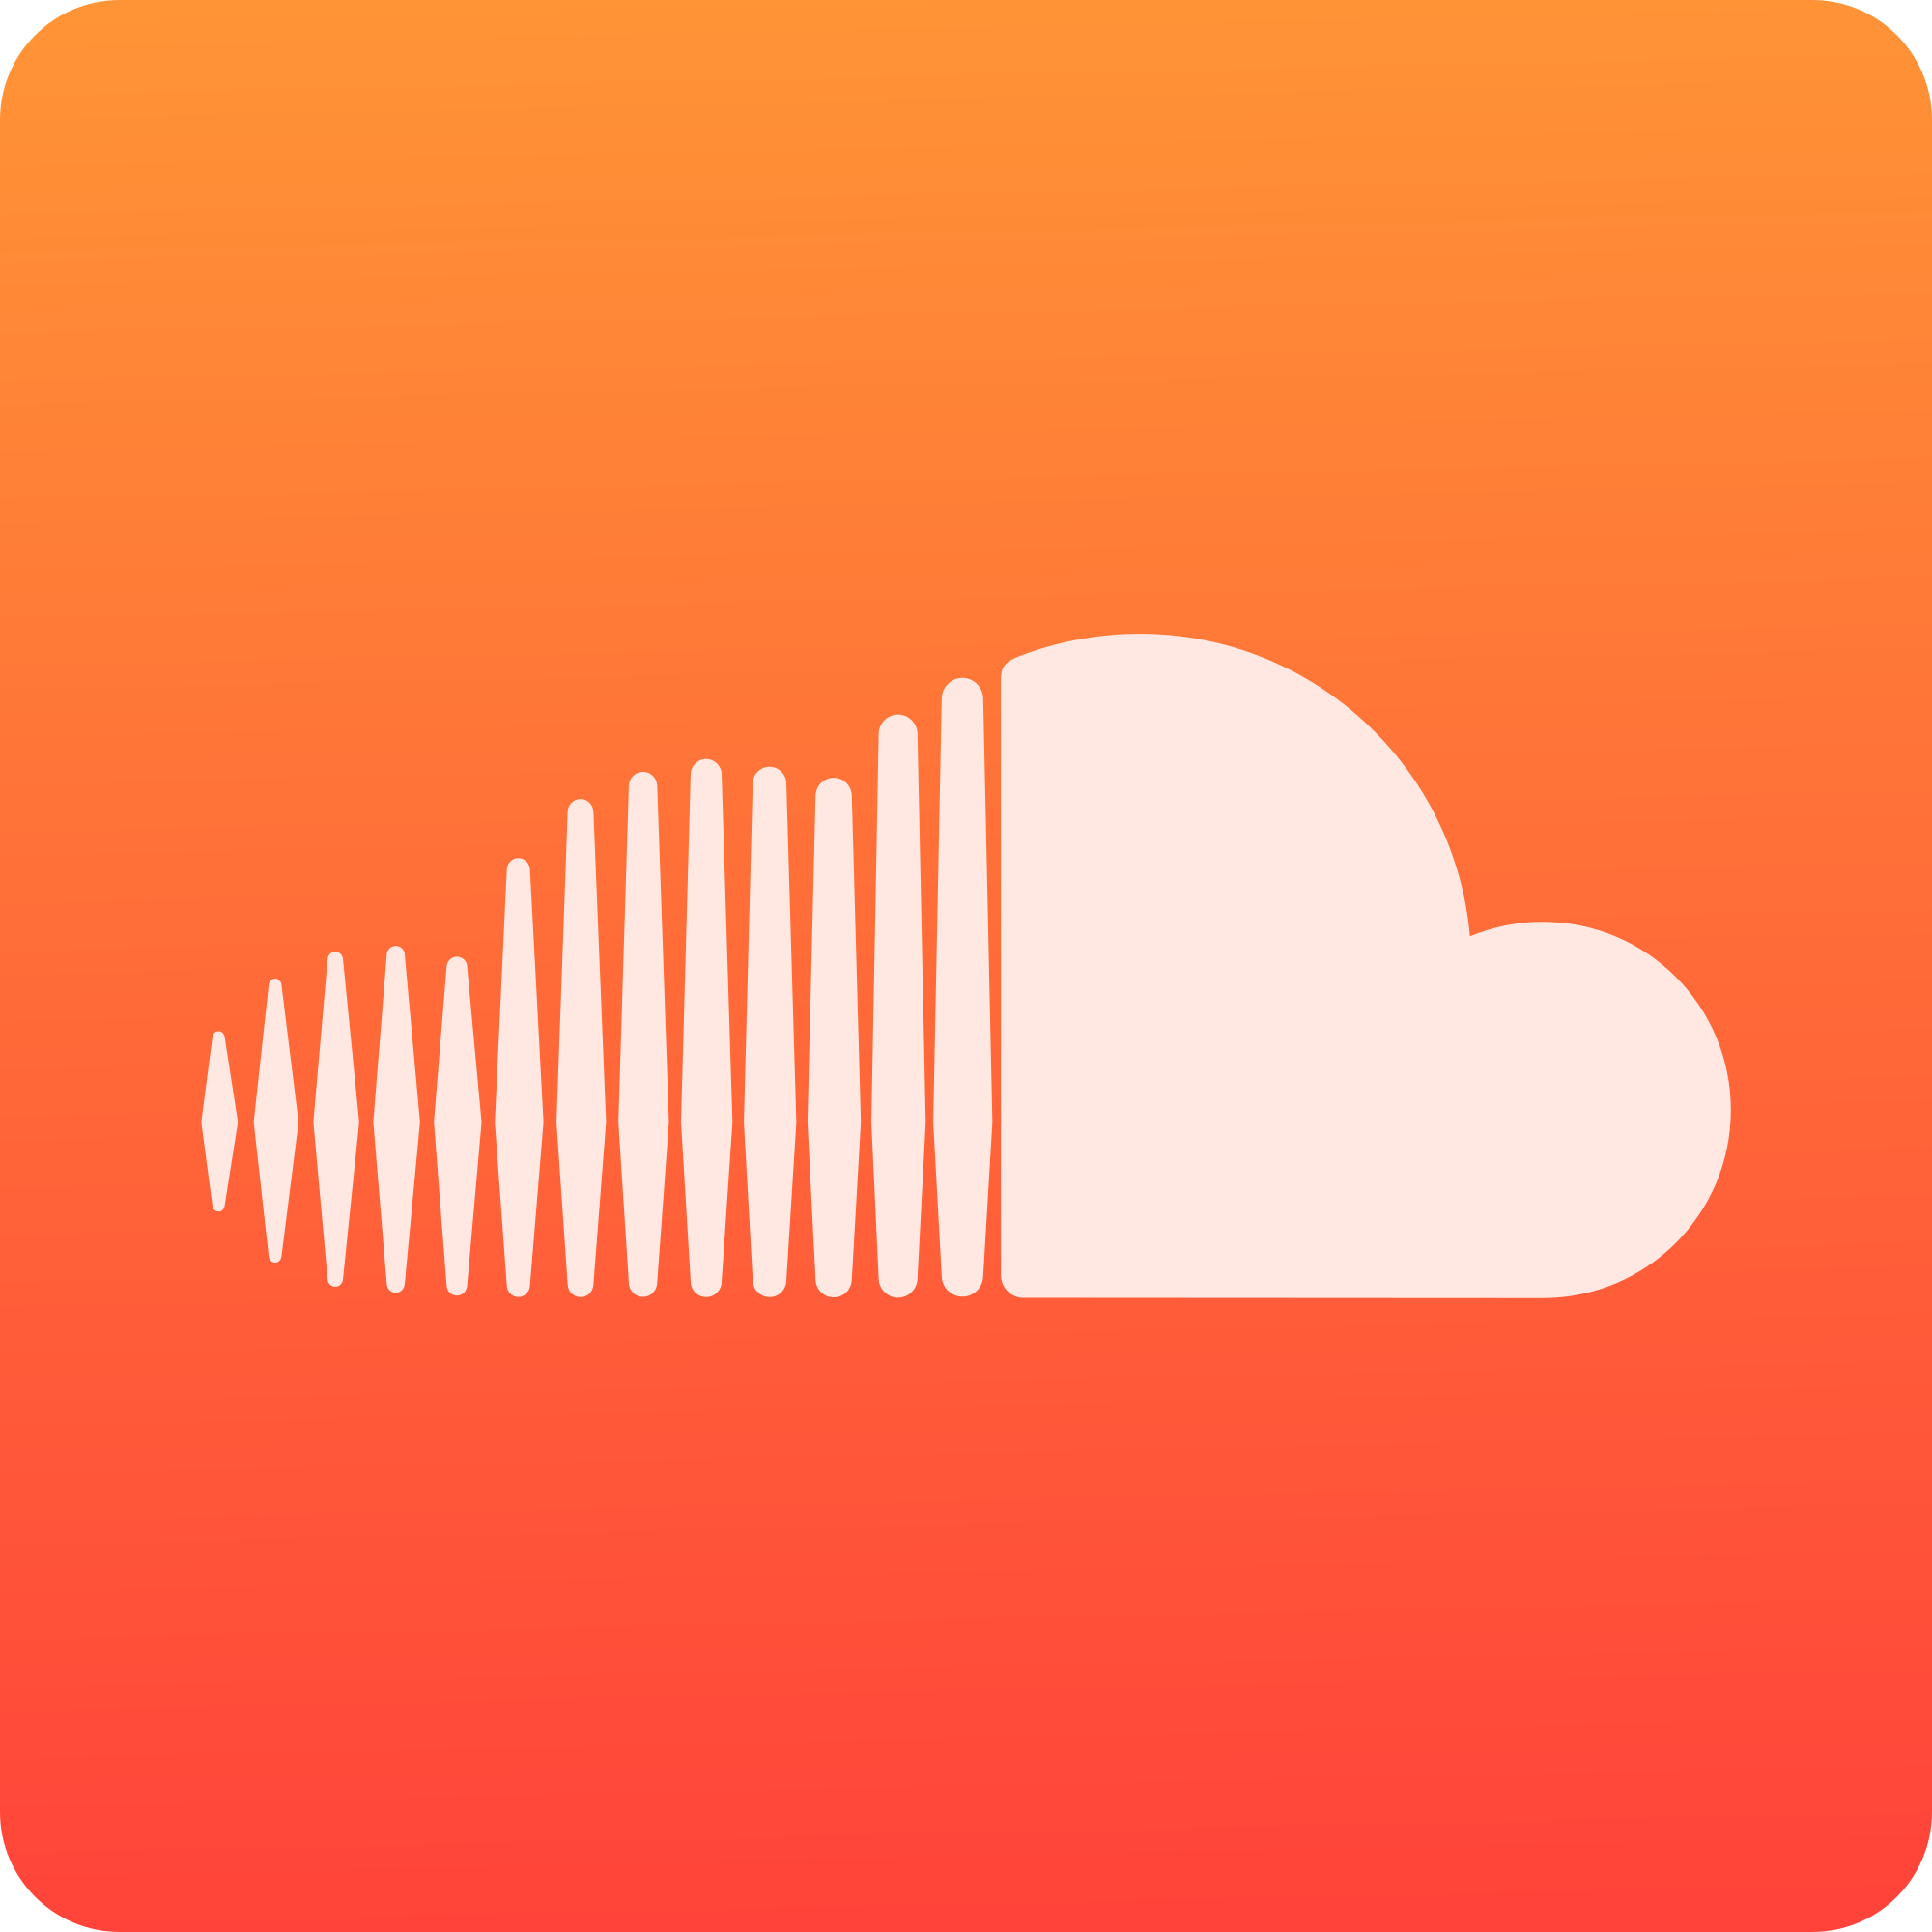 whats happening with soundcloud and why does it matter